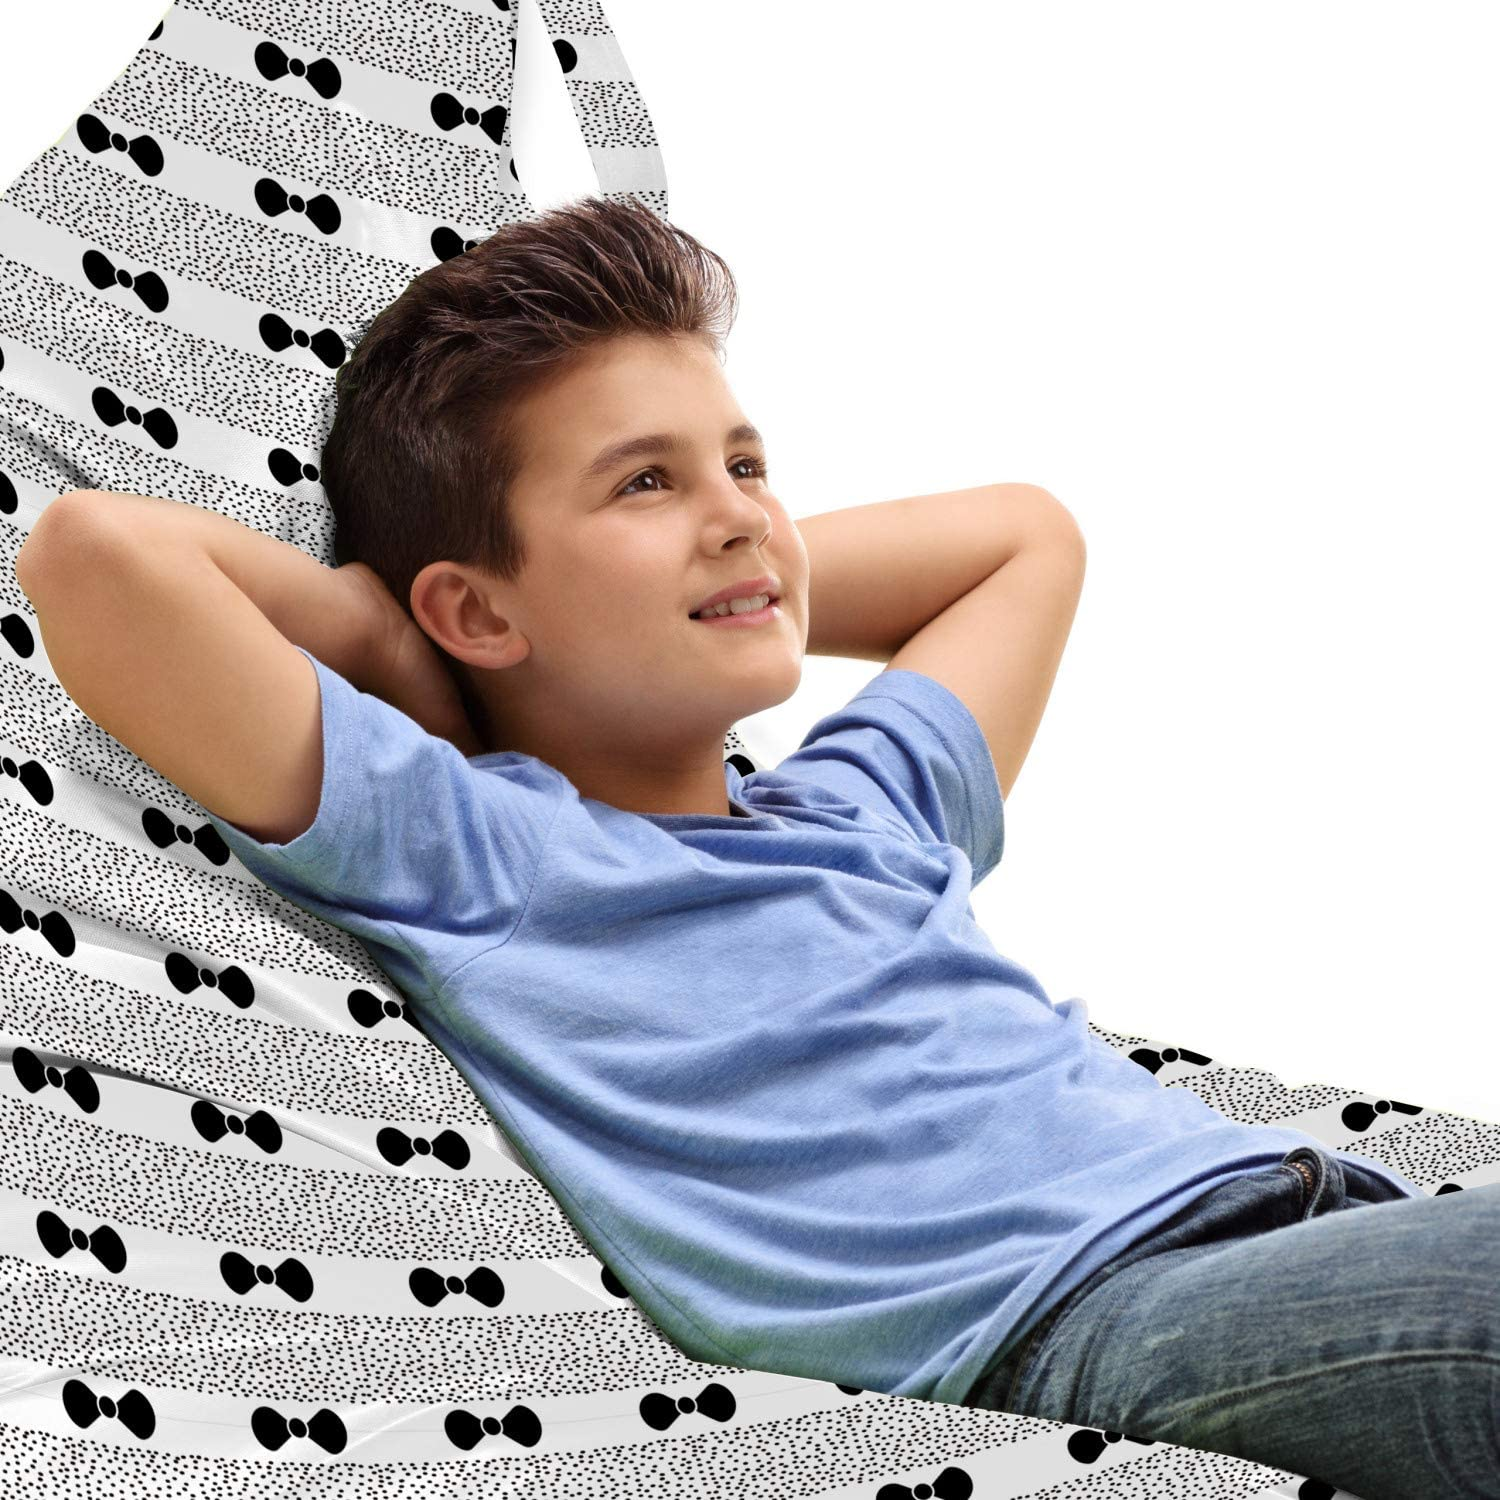 Lunarable Hipster Lounger Chair Bag T Black Bow Modern Same day shipping Repeated Max 67% OFF